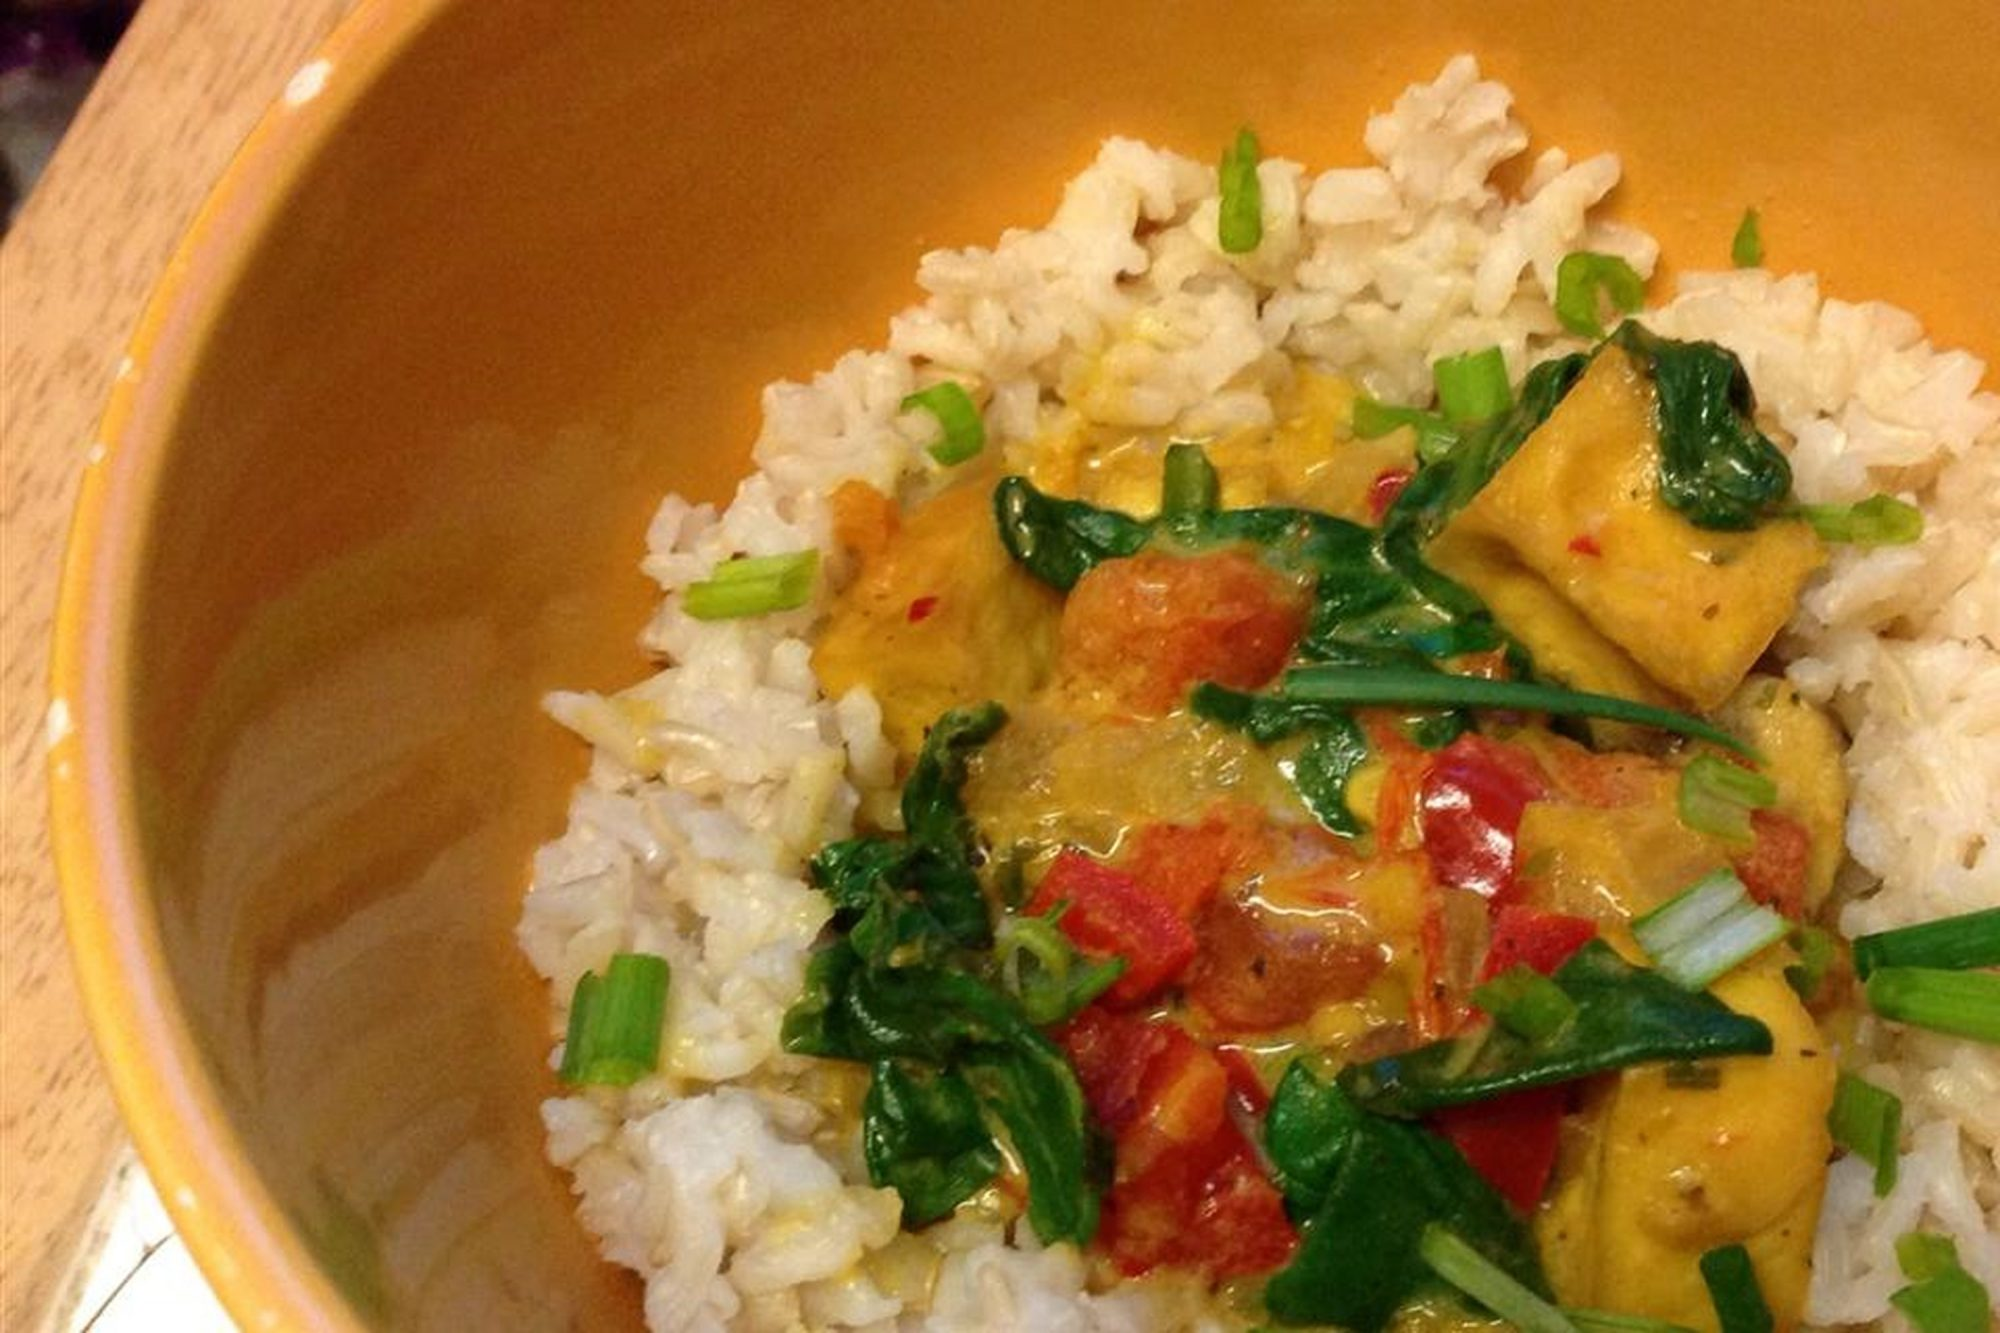 Coconut Curry Tofu over white rice in wooden bowl